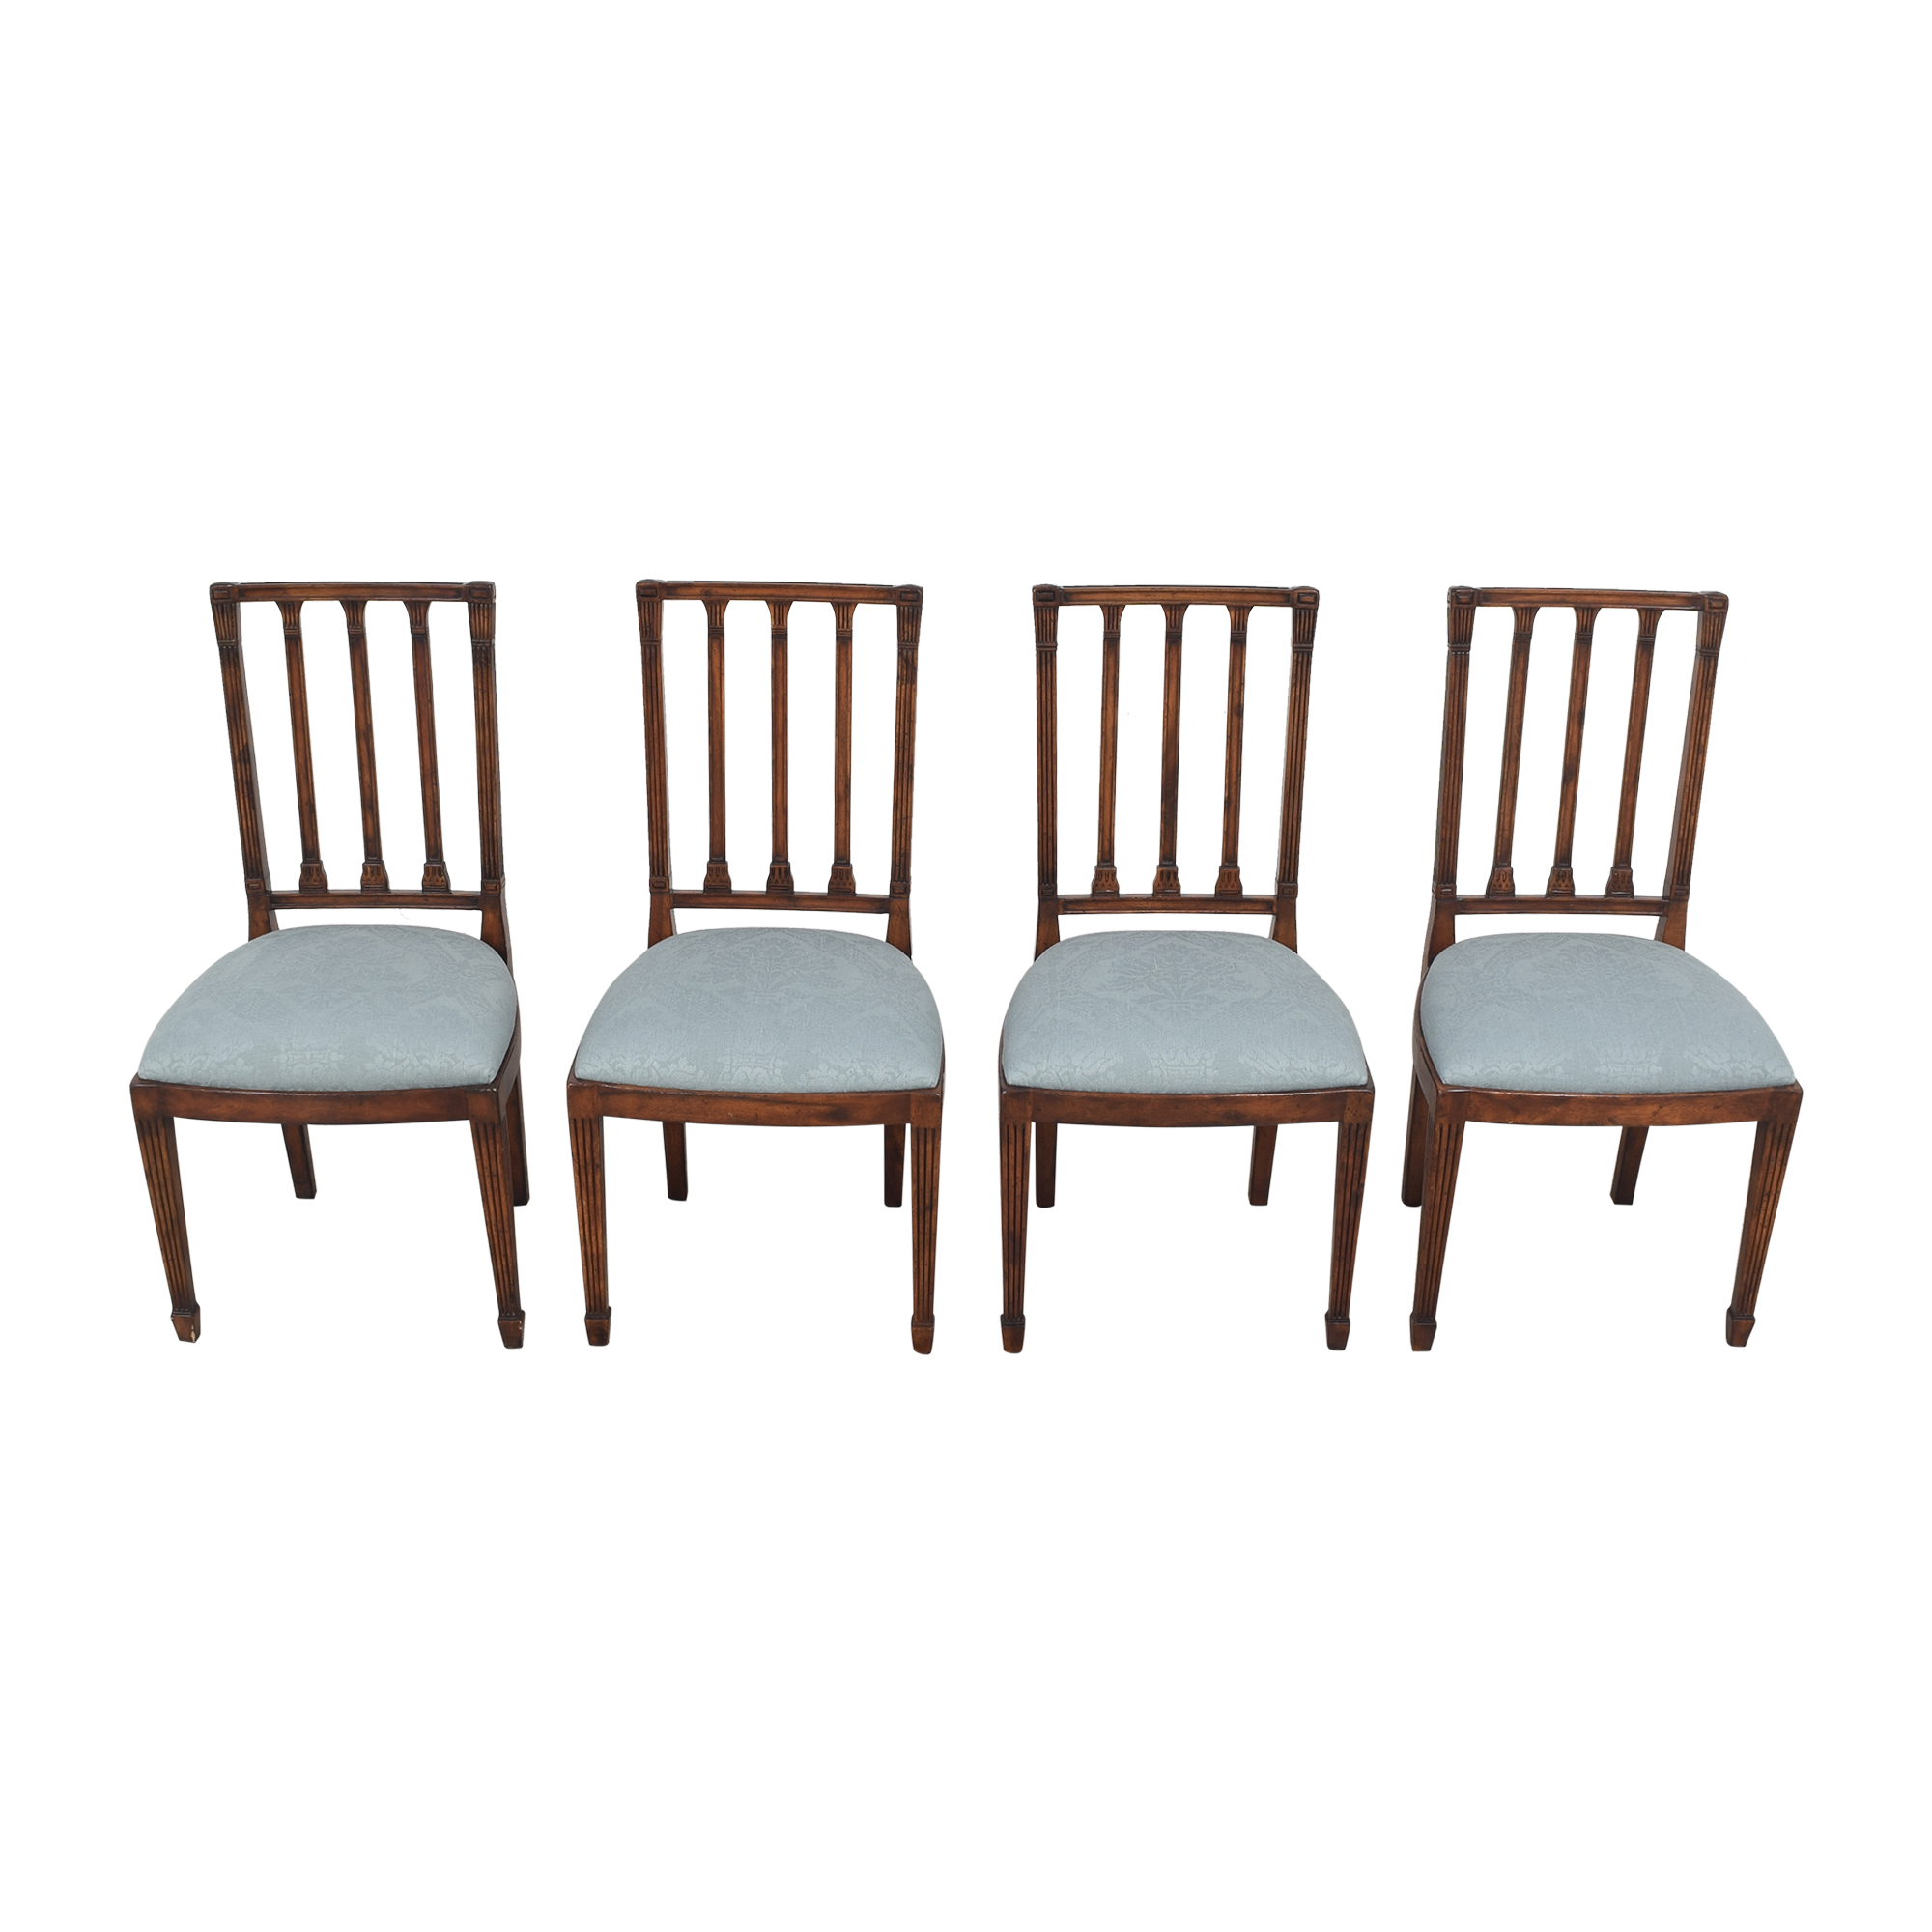 shop English Country Home Upholstered Dining Chairs English Country Home Dining Chairs